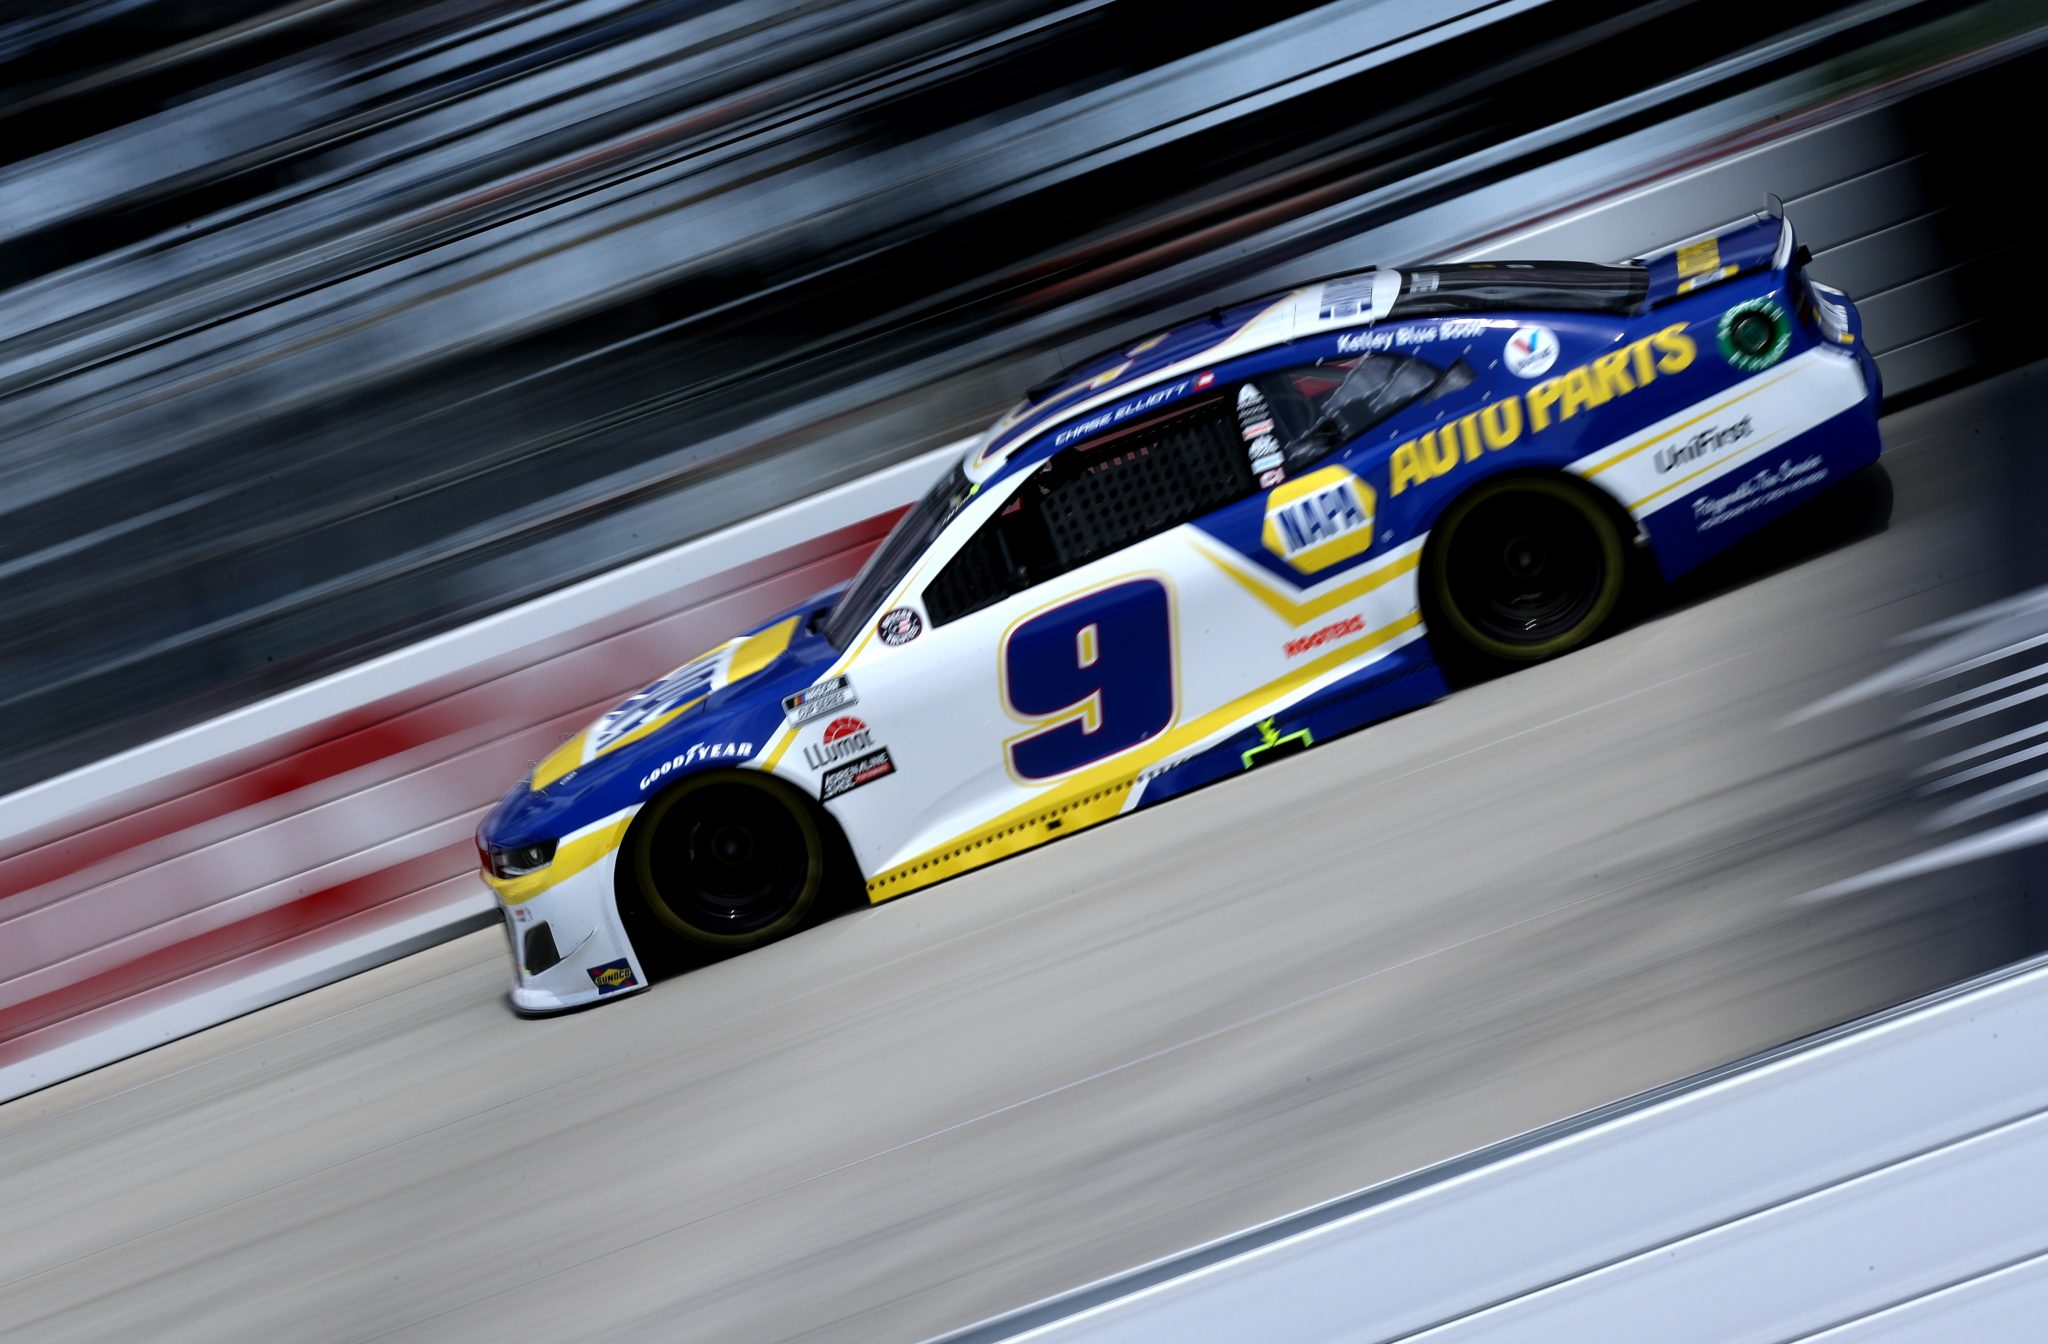 DOVER, DELAWARE - MAY 16: Chase Elliott, driver of the #9 NAPA Auto Parts Chevrolet, races during the NASCAR Cup Series Drydene 400 at Dover International Speedway on May 16, 2021 in Dover, Delaware. (Photo by Sean Gardner/Getty Images) | Getty Images